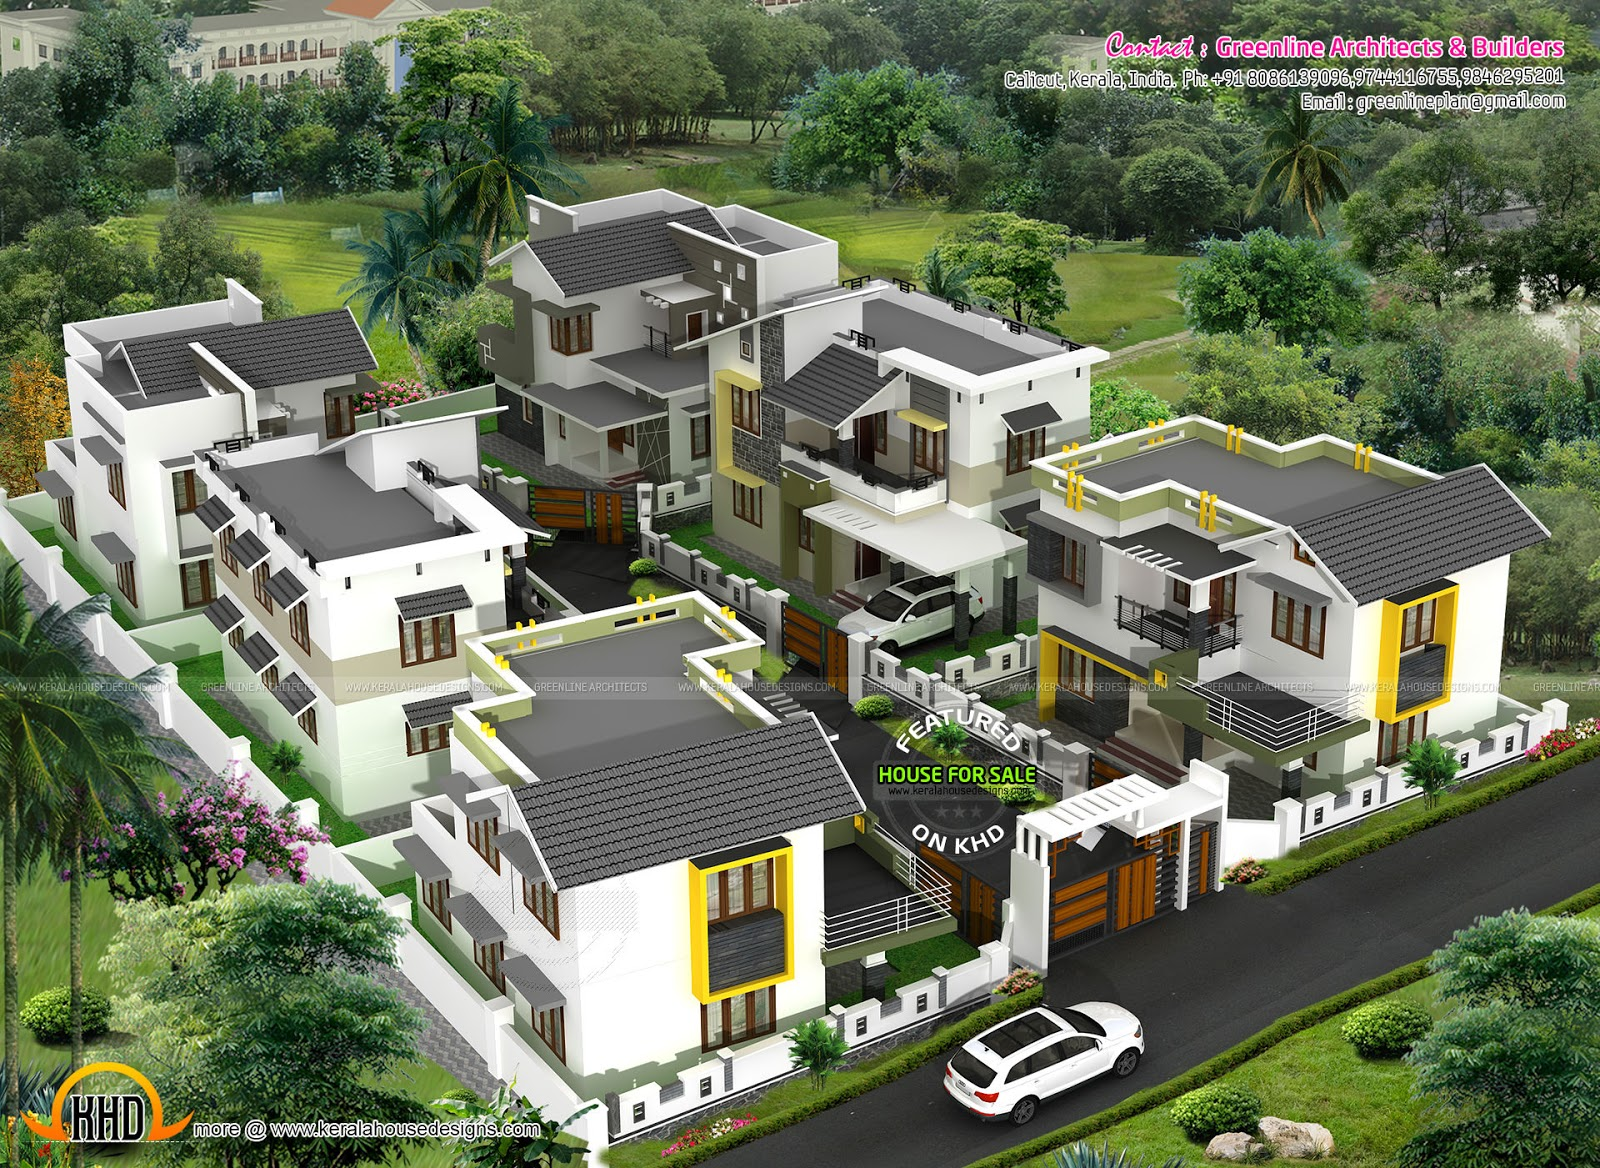 Villa For Sale At Calicut Kerala Kerala Home Design And Floor Plans - Home design site